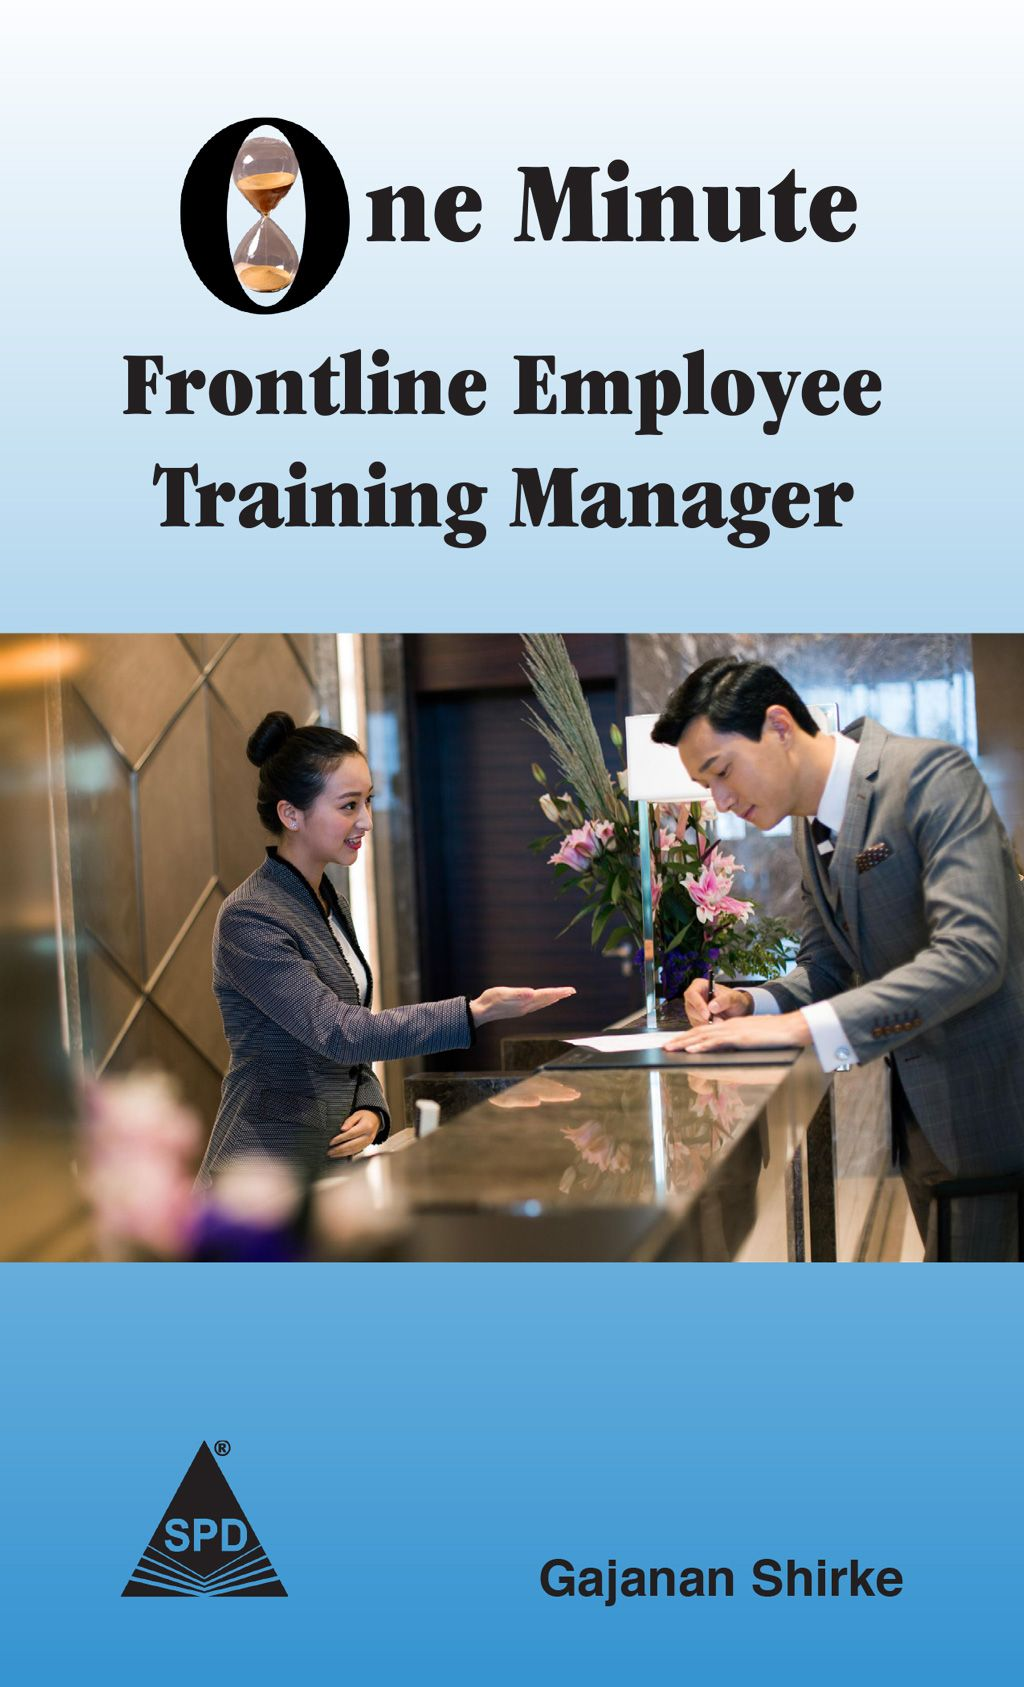 One Minute Frontline Employee Training Manager Training